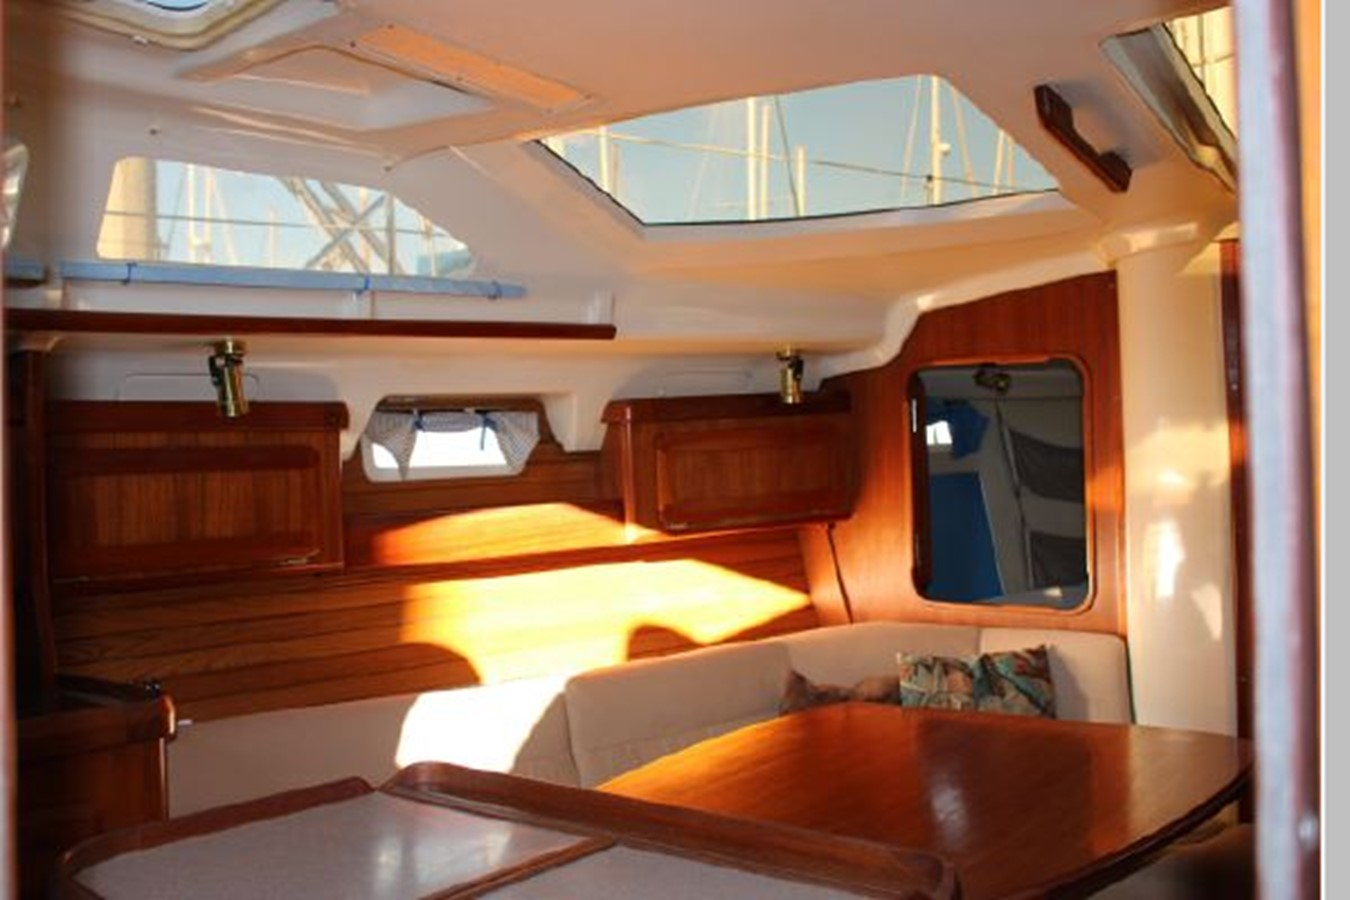 1993 HUNTER Vision 36 Cruising Sailboat 2599490